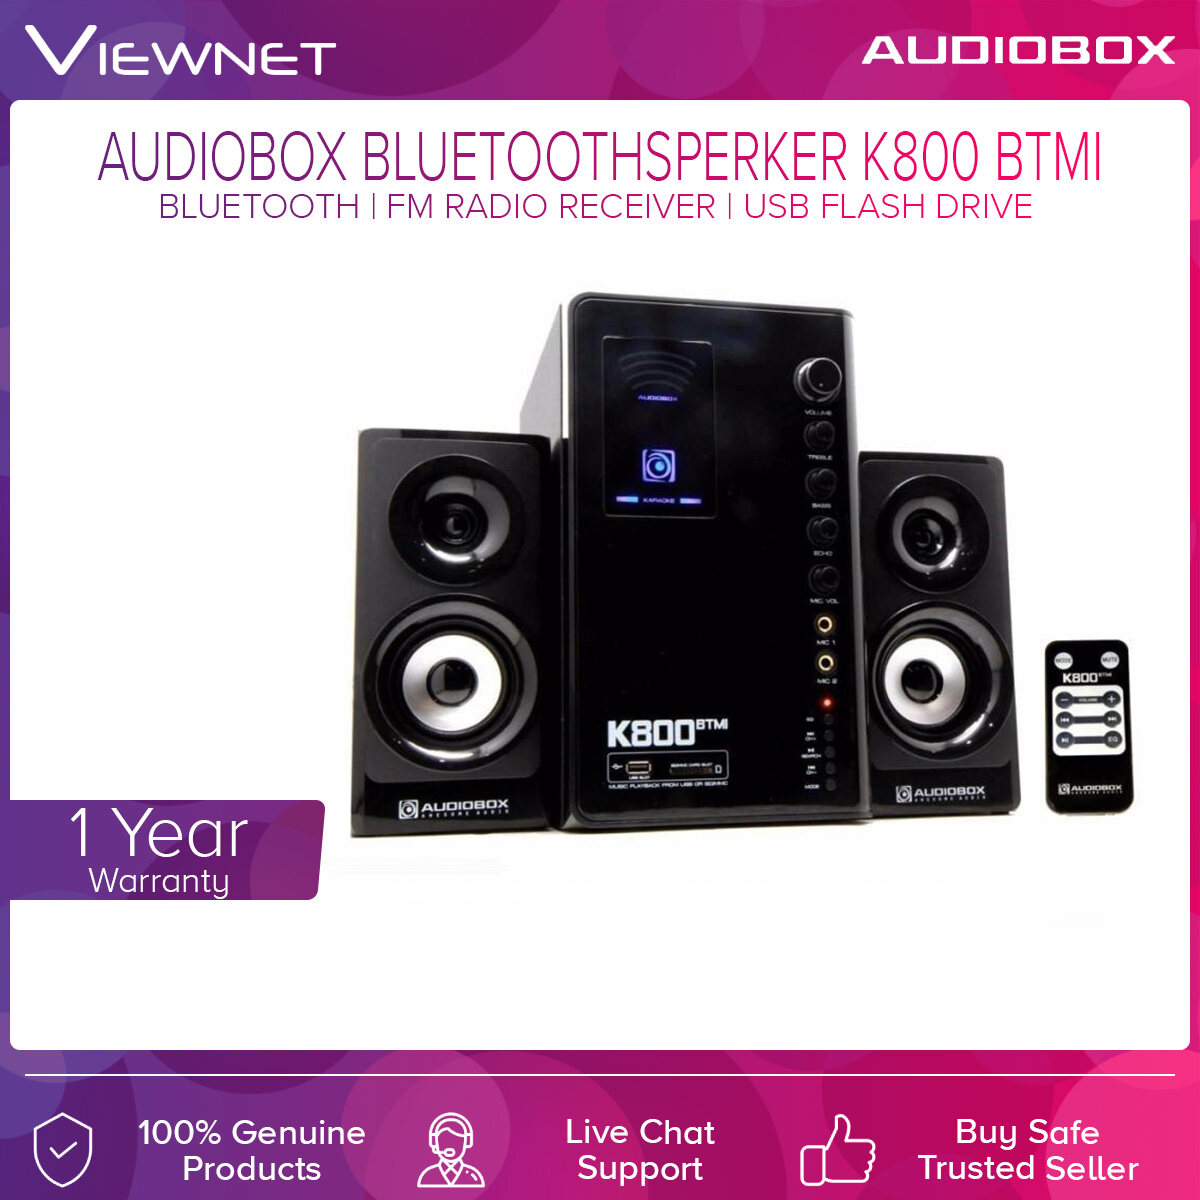 Audiobox Bluetooth Speaker K800 BTMI with USB-Flash Driver, SD-Card Reader,FM Radio Receiver, Support MP3 Songs, 2 Microphone Jack